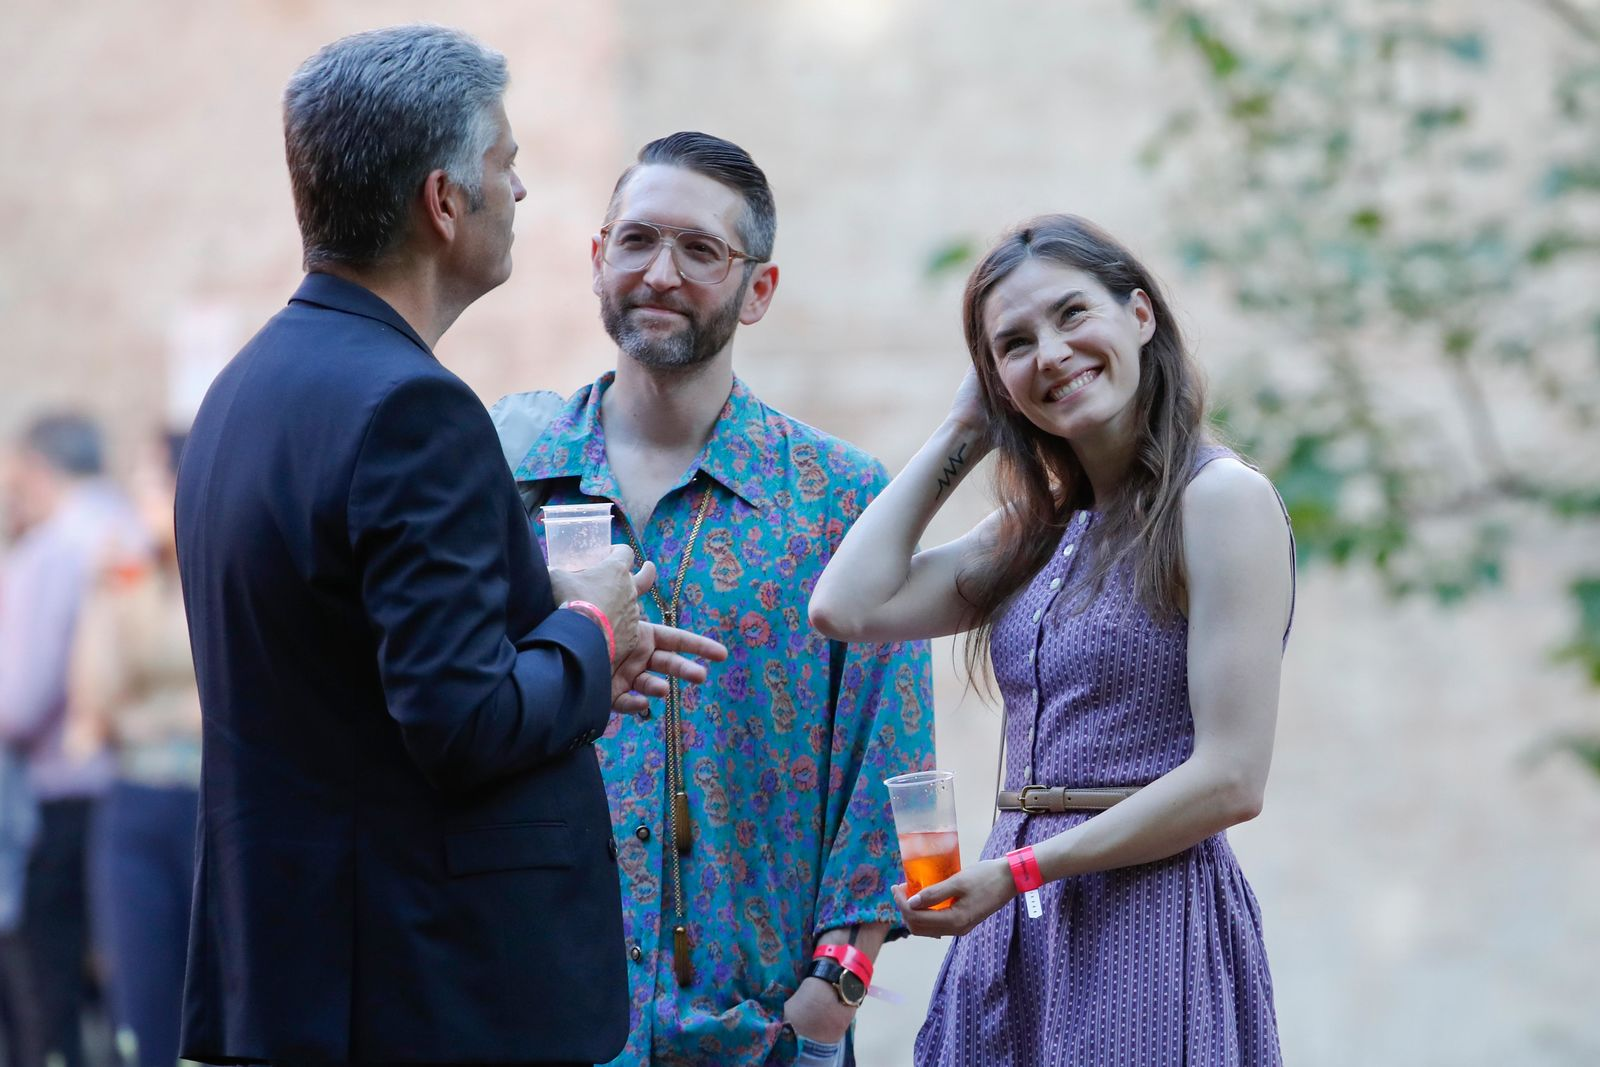 Amanda Knox, right, and her boyfriend Christopher Robinson, center, talk with a guest as they attend a cocktail for the opening of the Innocence Project conference, in Modena, Italy, Thursday, June 13, 2019. (AP Photo/Antonio Calanni)(AP Photo/Antonio calanni)